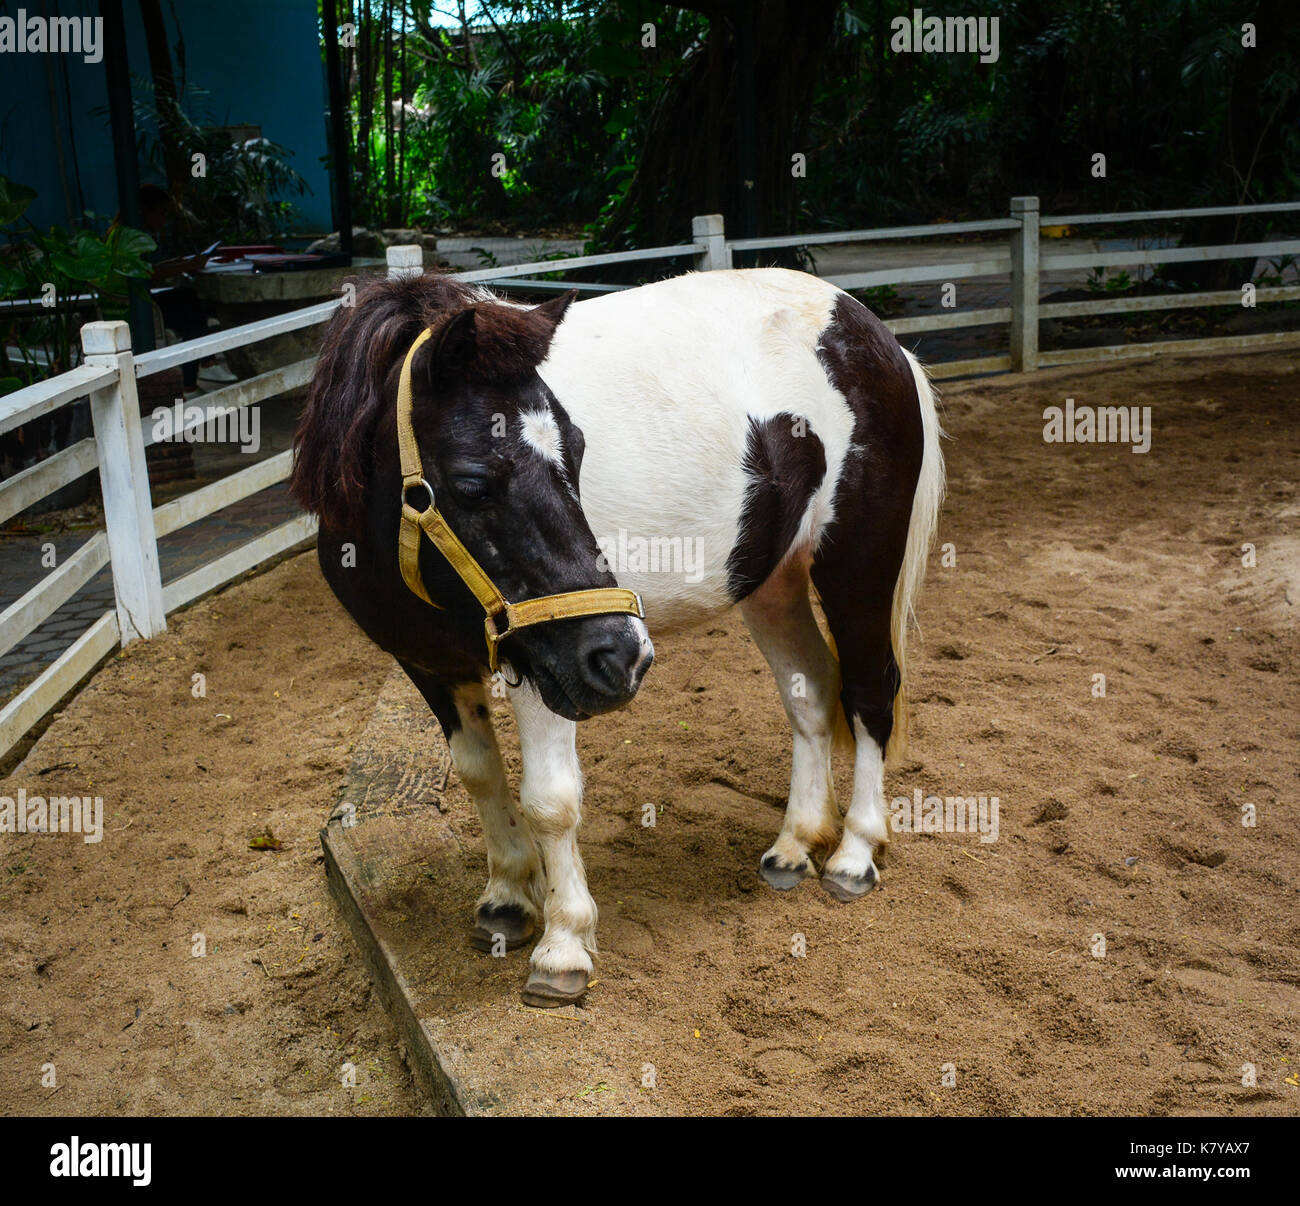 A pony standing in case at safari park in Bangkok, Thailand. Stock Photo